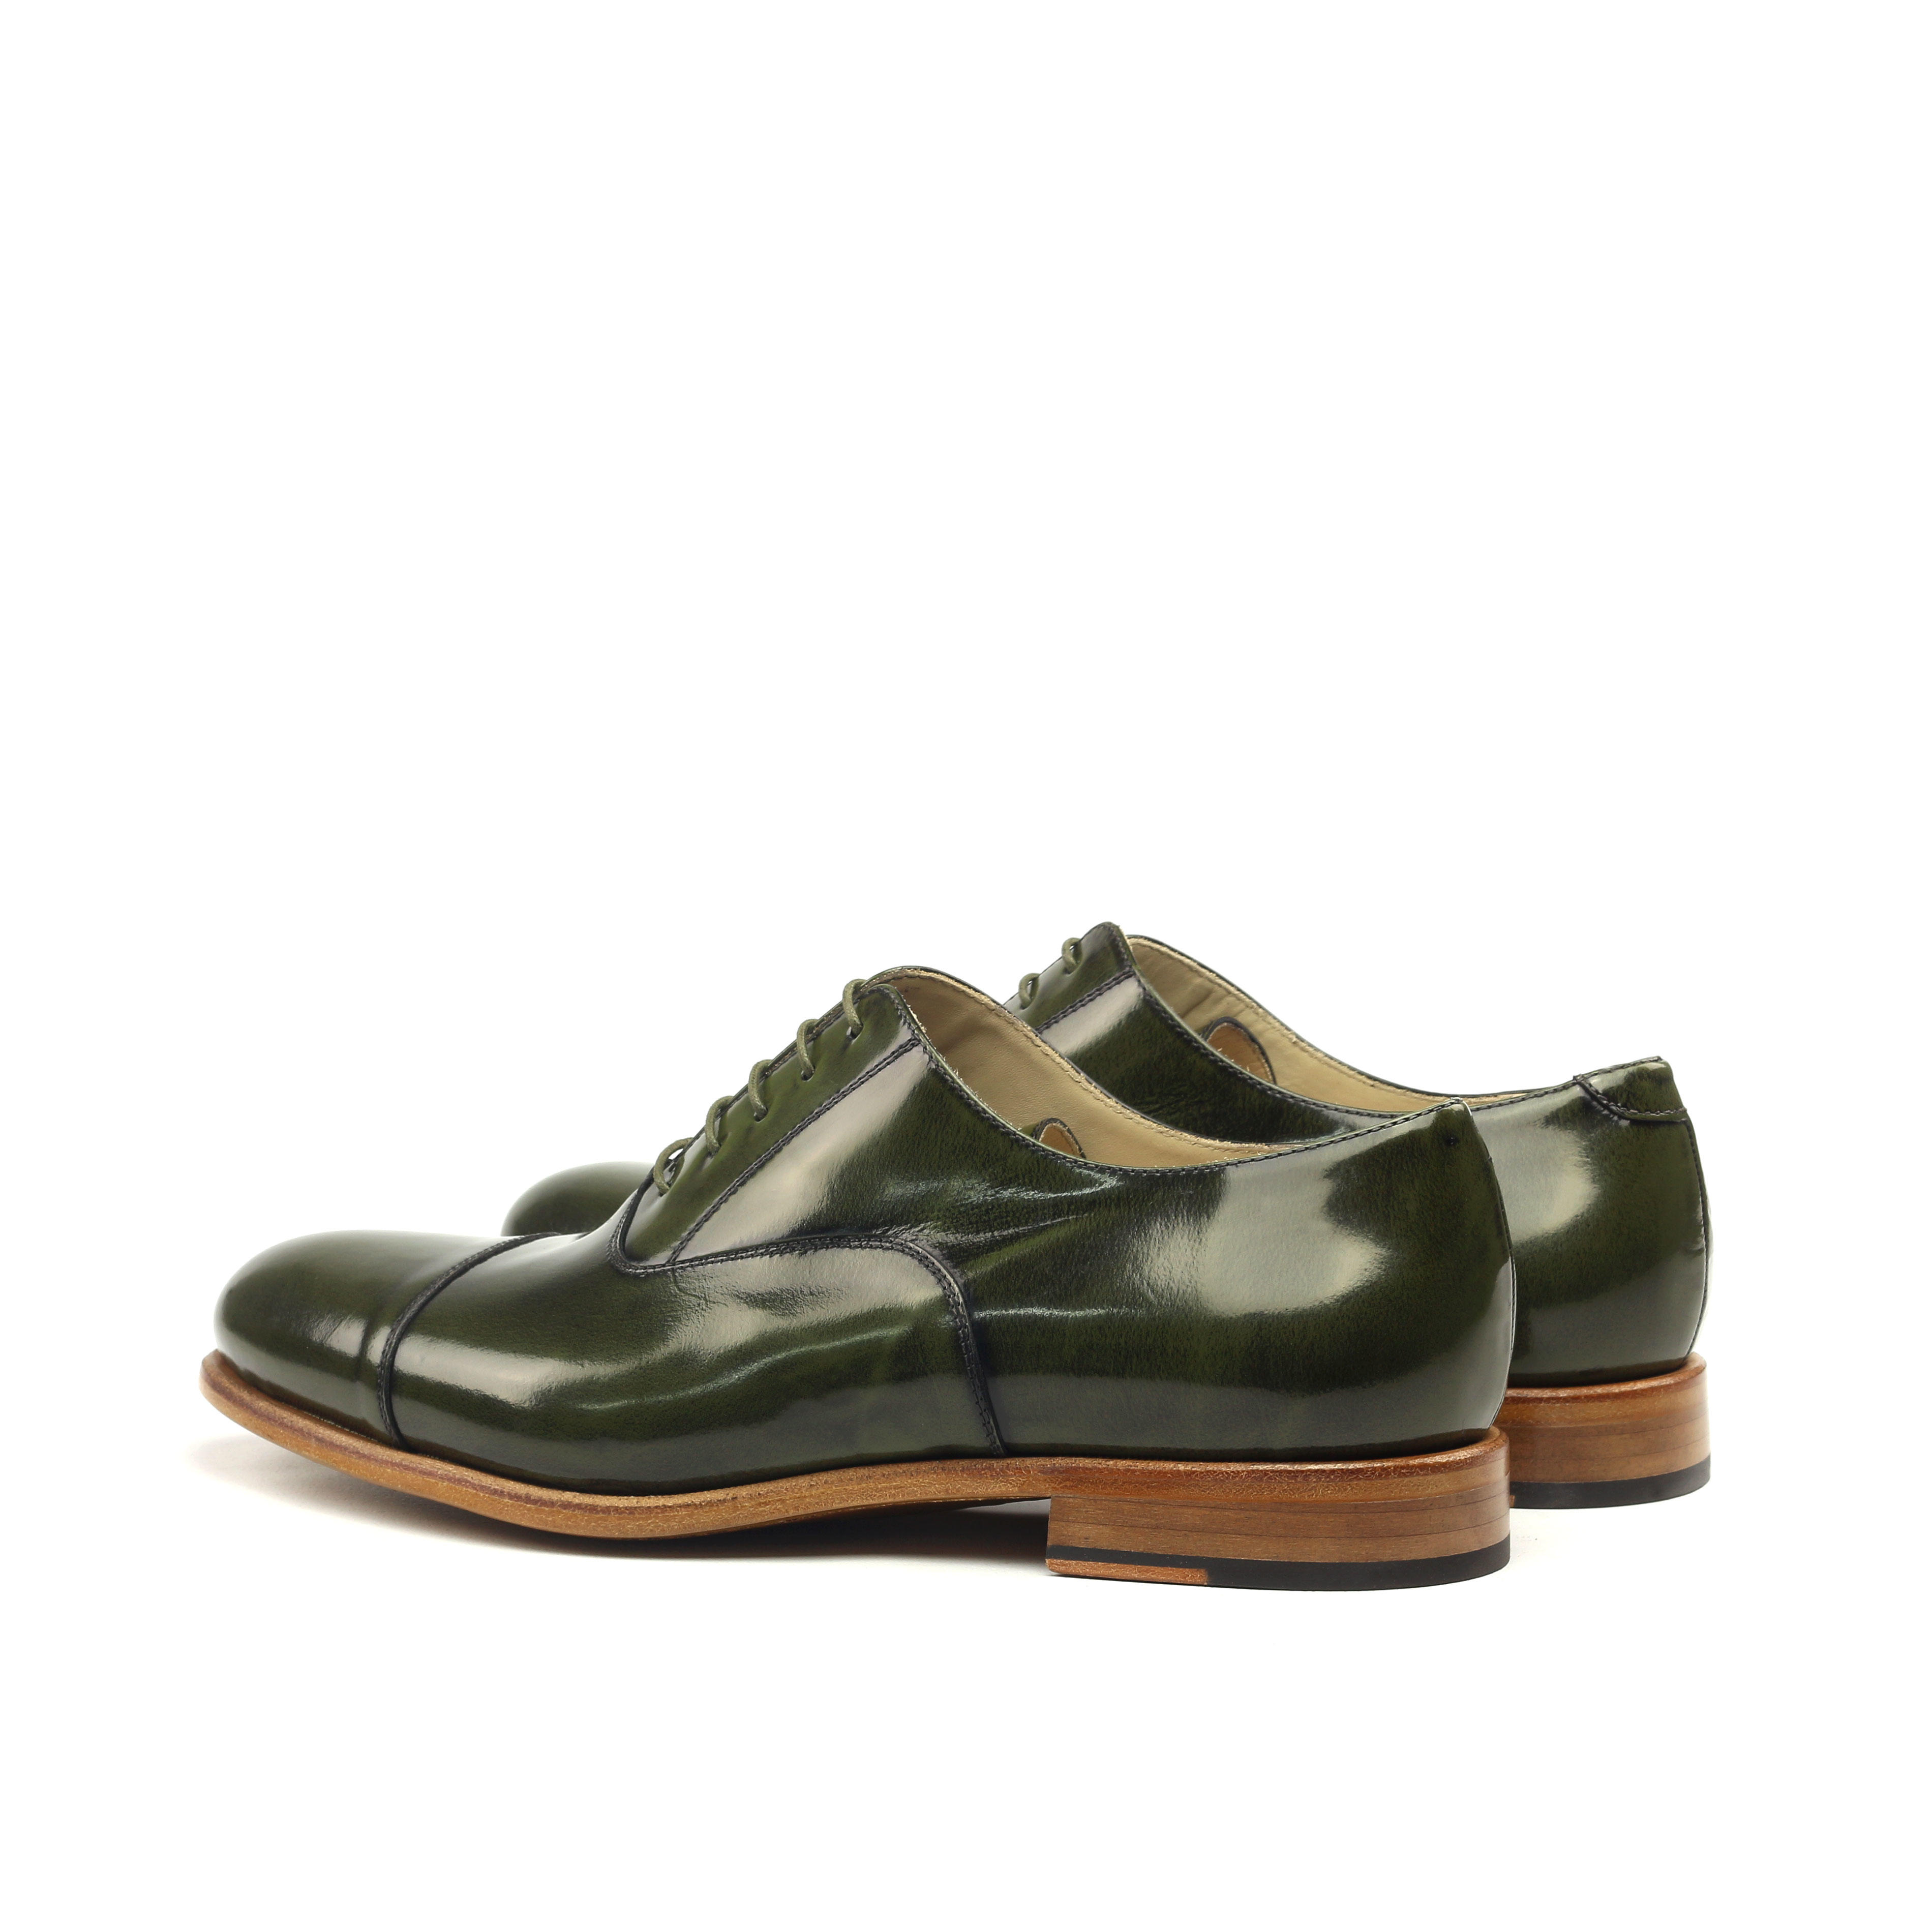 MANOR OF LONDON 'The Oxford' Polished Green Calfskin Shoe Luxury Custom Initials Monogrammed Back Side View